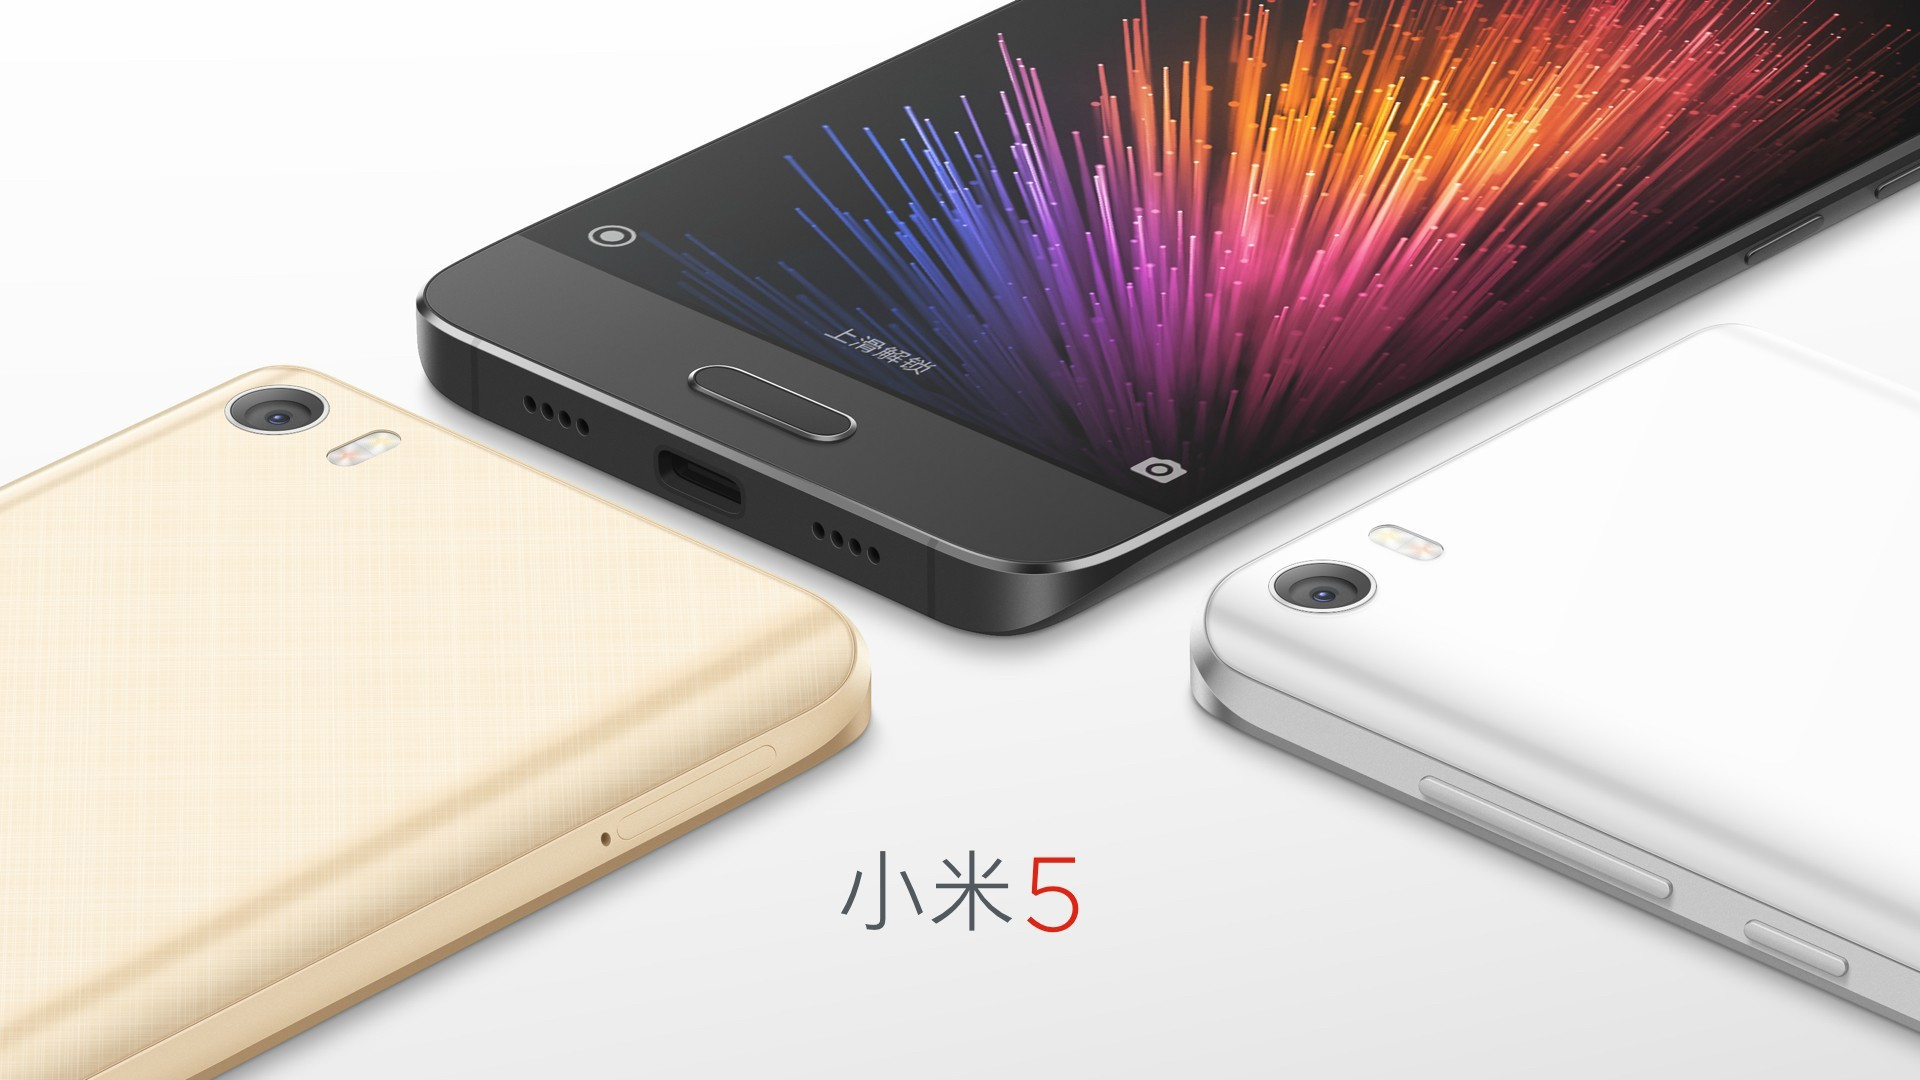 xiaomi-mi5-goes-official-with-5-15-inch-fhd-display-snapdragon-820-cpu-4gb-ram-500895-5[1]